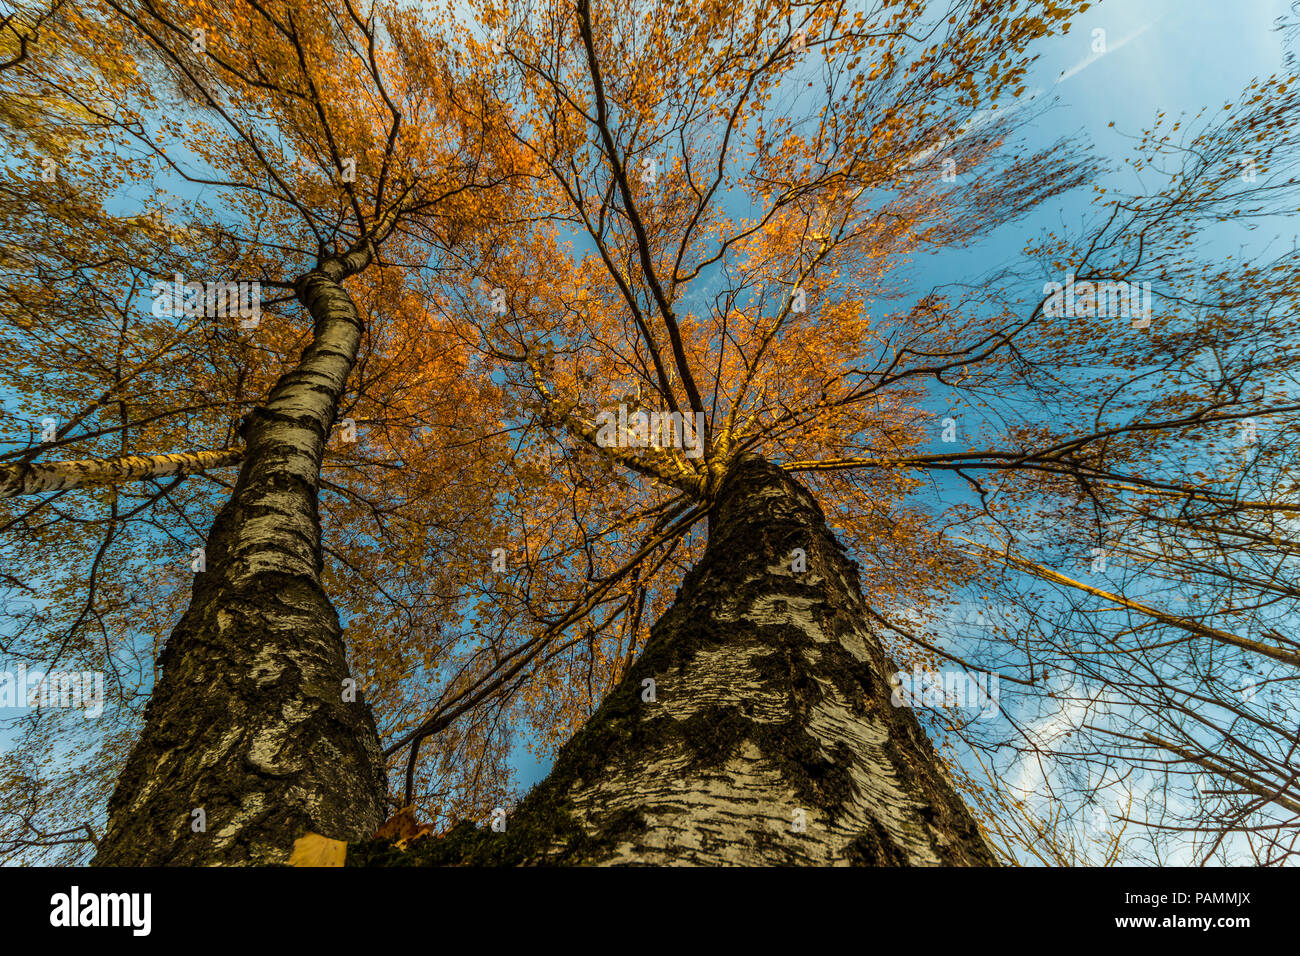 trees in autumn from below, wide angle - Stock Image